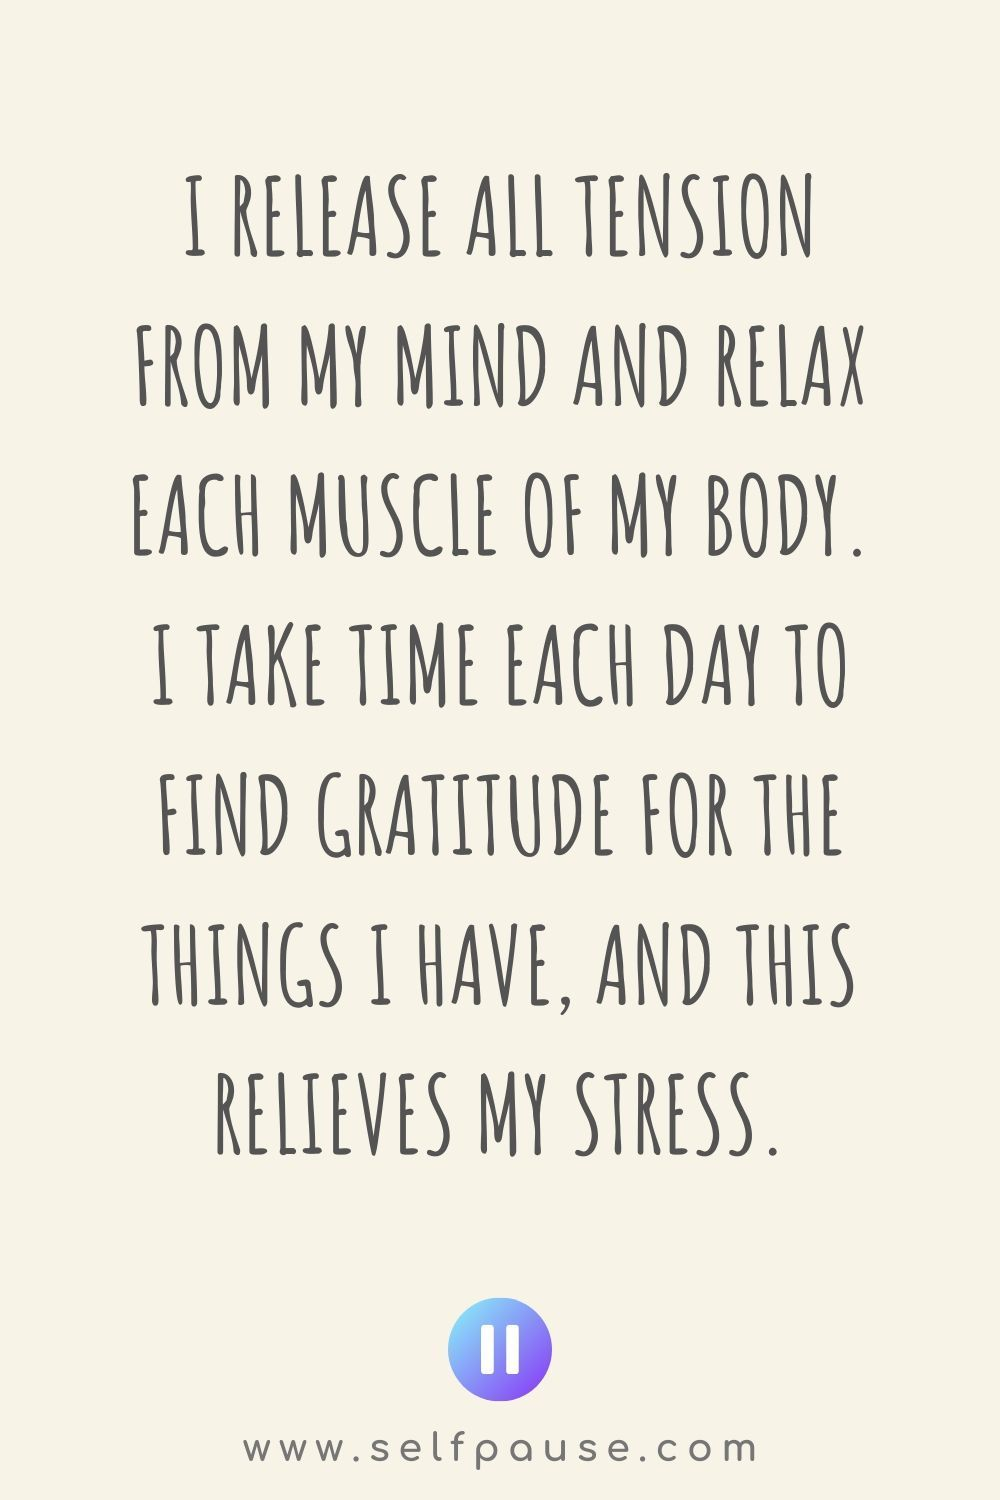 Stress Relief Quotes Stress Relief Affirmations - Selfpause